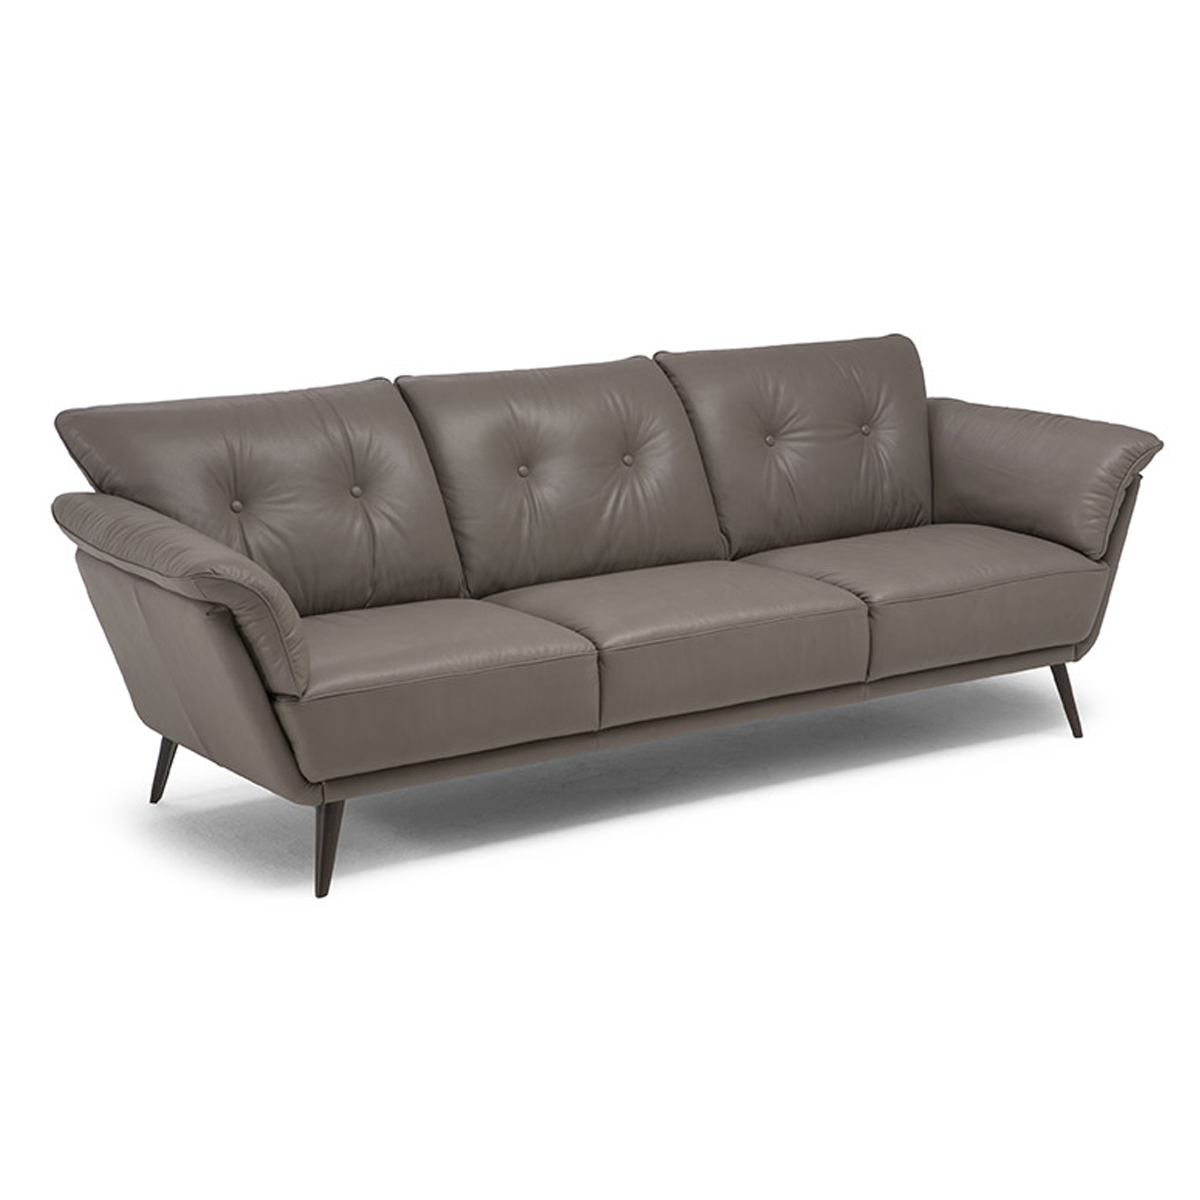 Cheap Beds Manchester Uk Leather Sofas Manchester Uk Brokeasshome